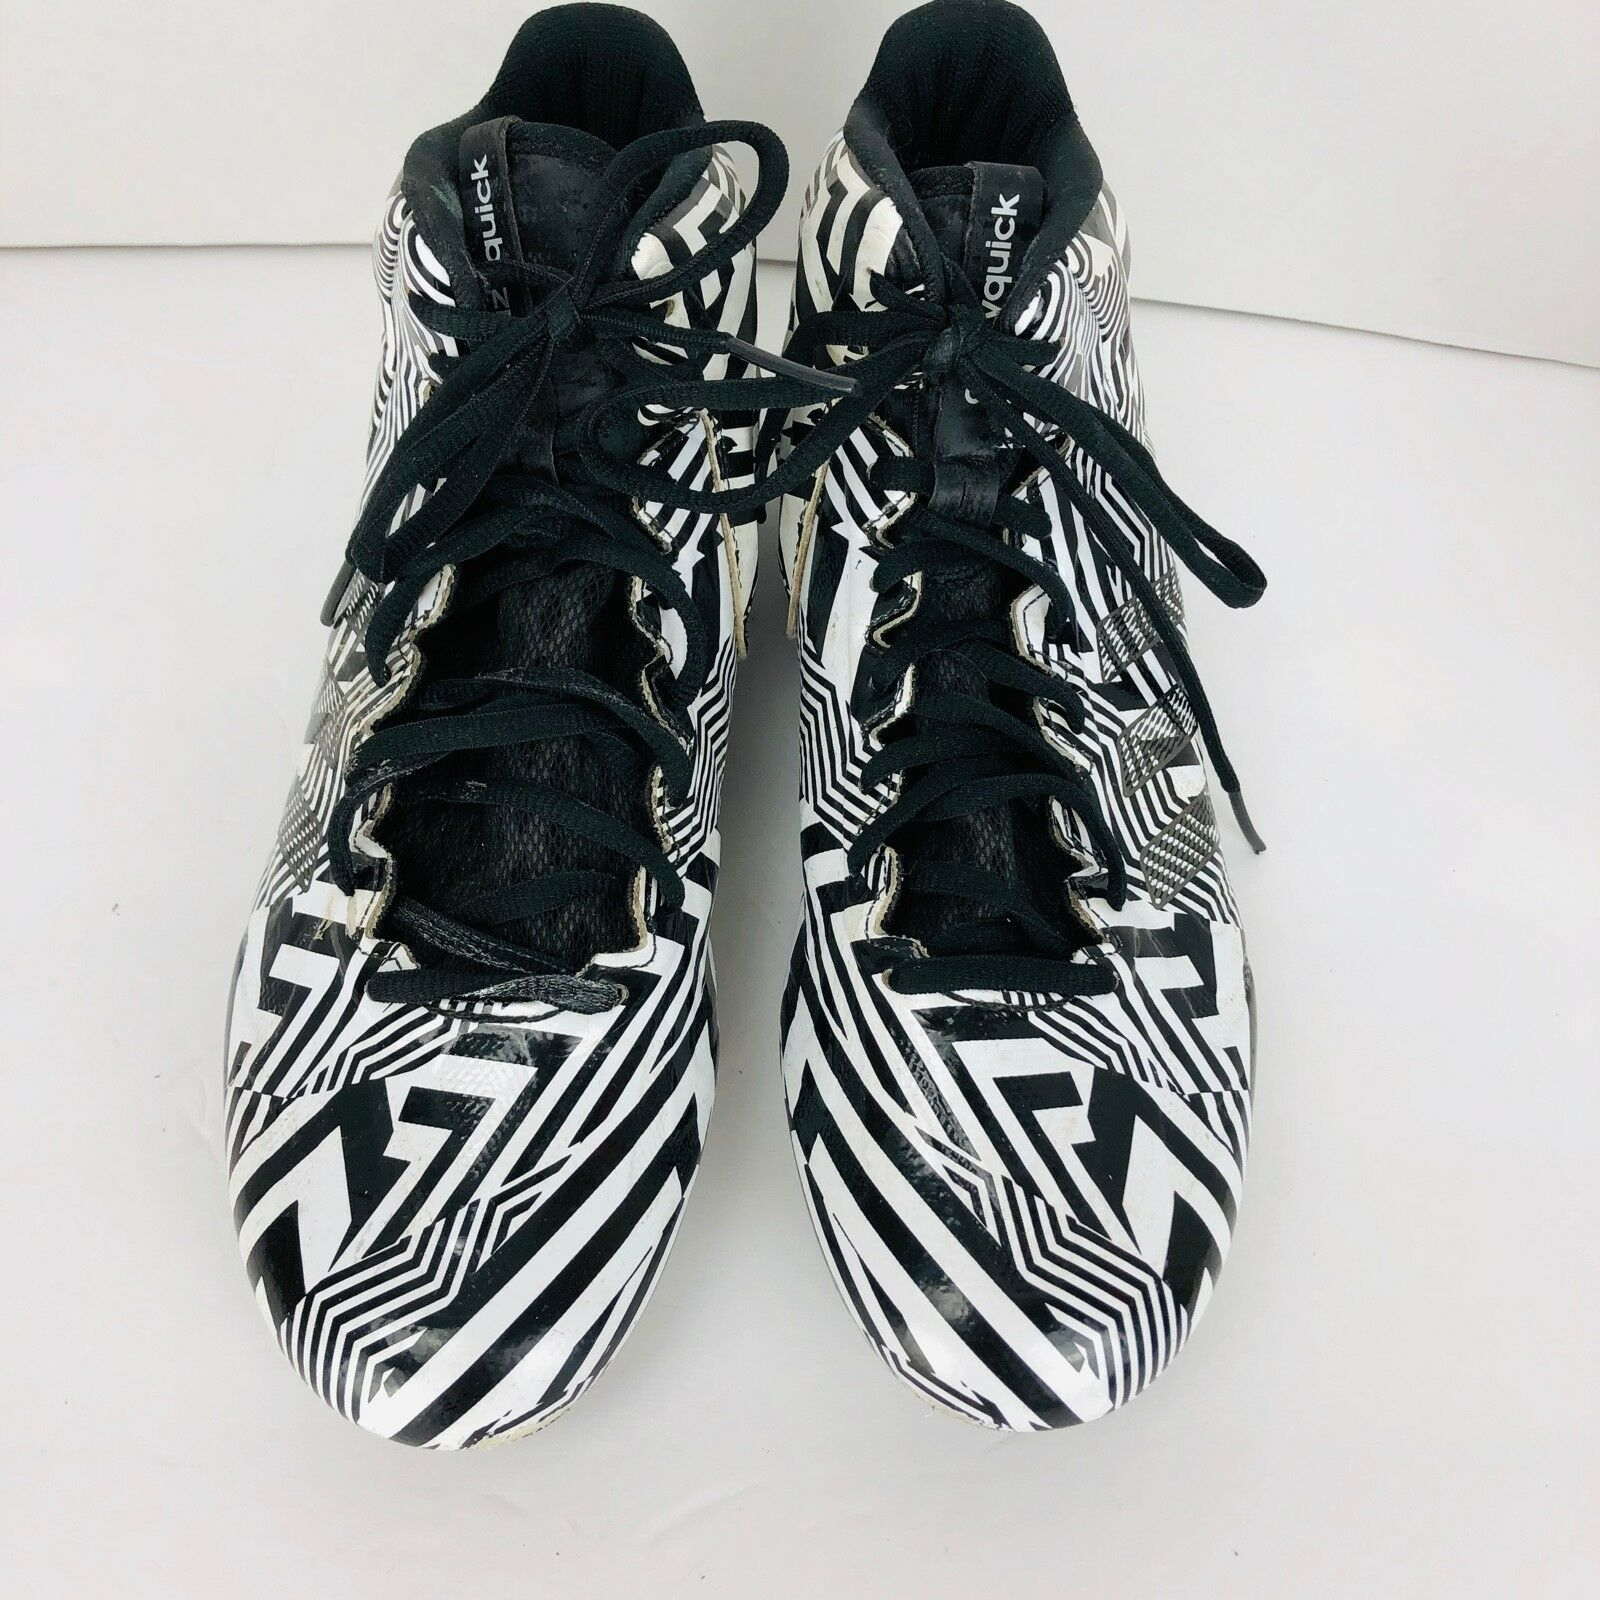 best sneakers 22f1f 2d3e8 ADIDAS Mens Football Soccer Cleats Black White Size US 9 CLU 600001  Crazyquick